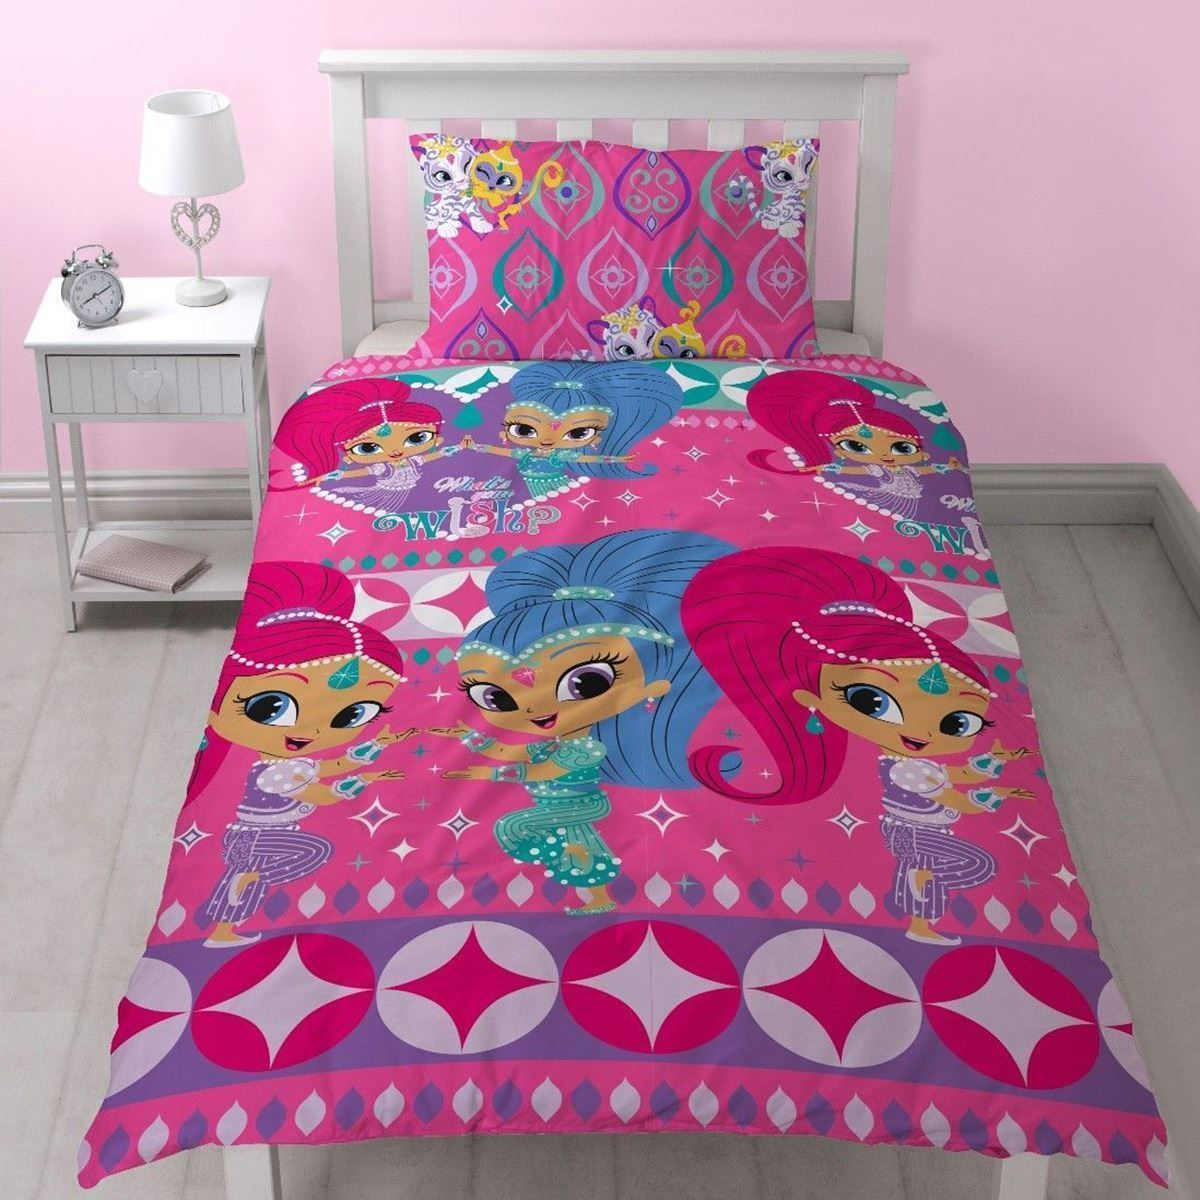 Shimmer & Shine Zahramay Single Quilt cover set. Available at Kids ... : quilt cover australia buy online - Adamdwight.com